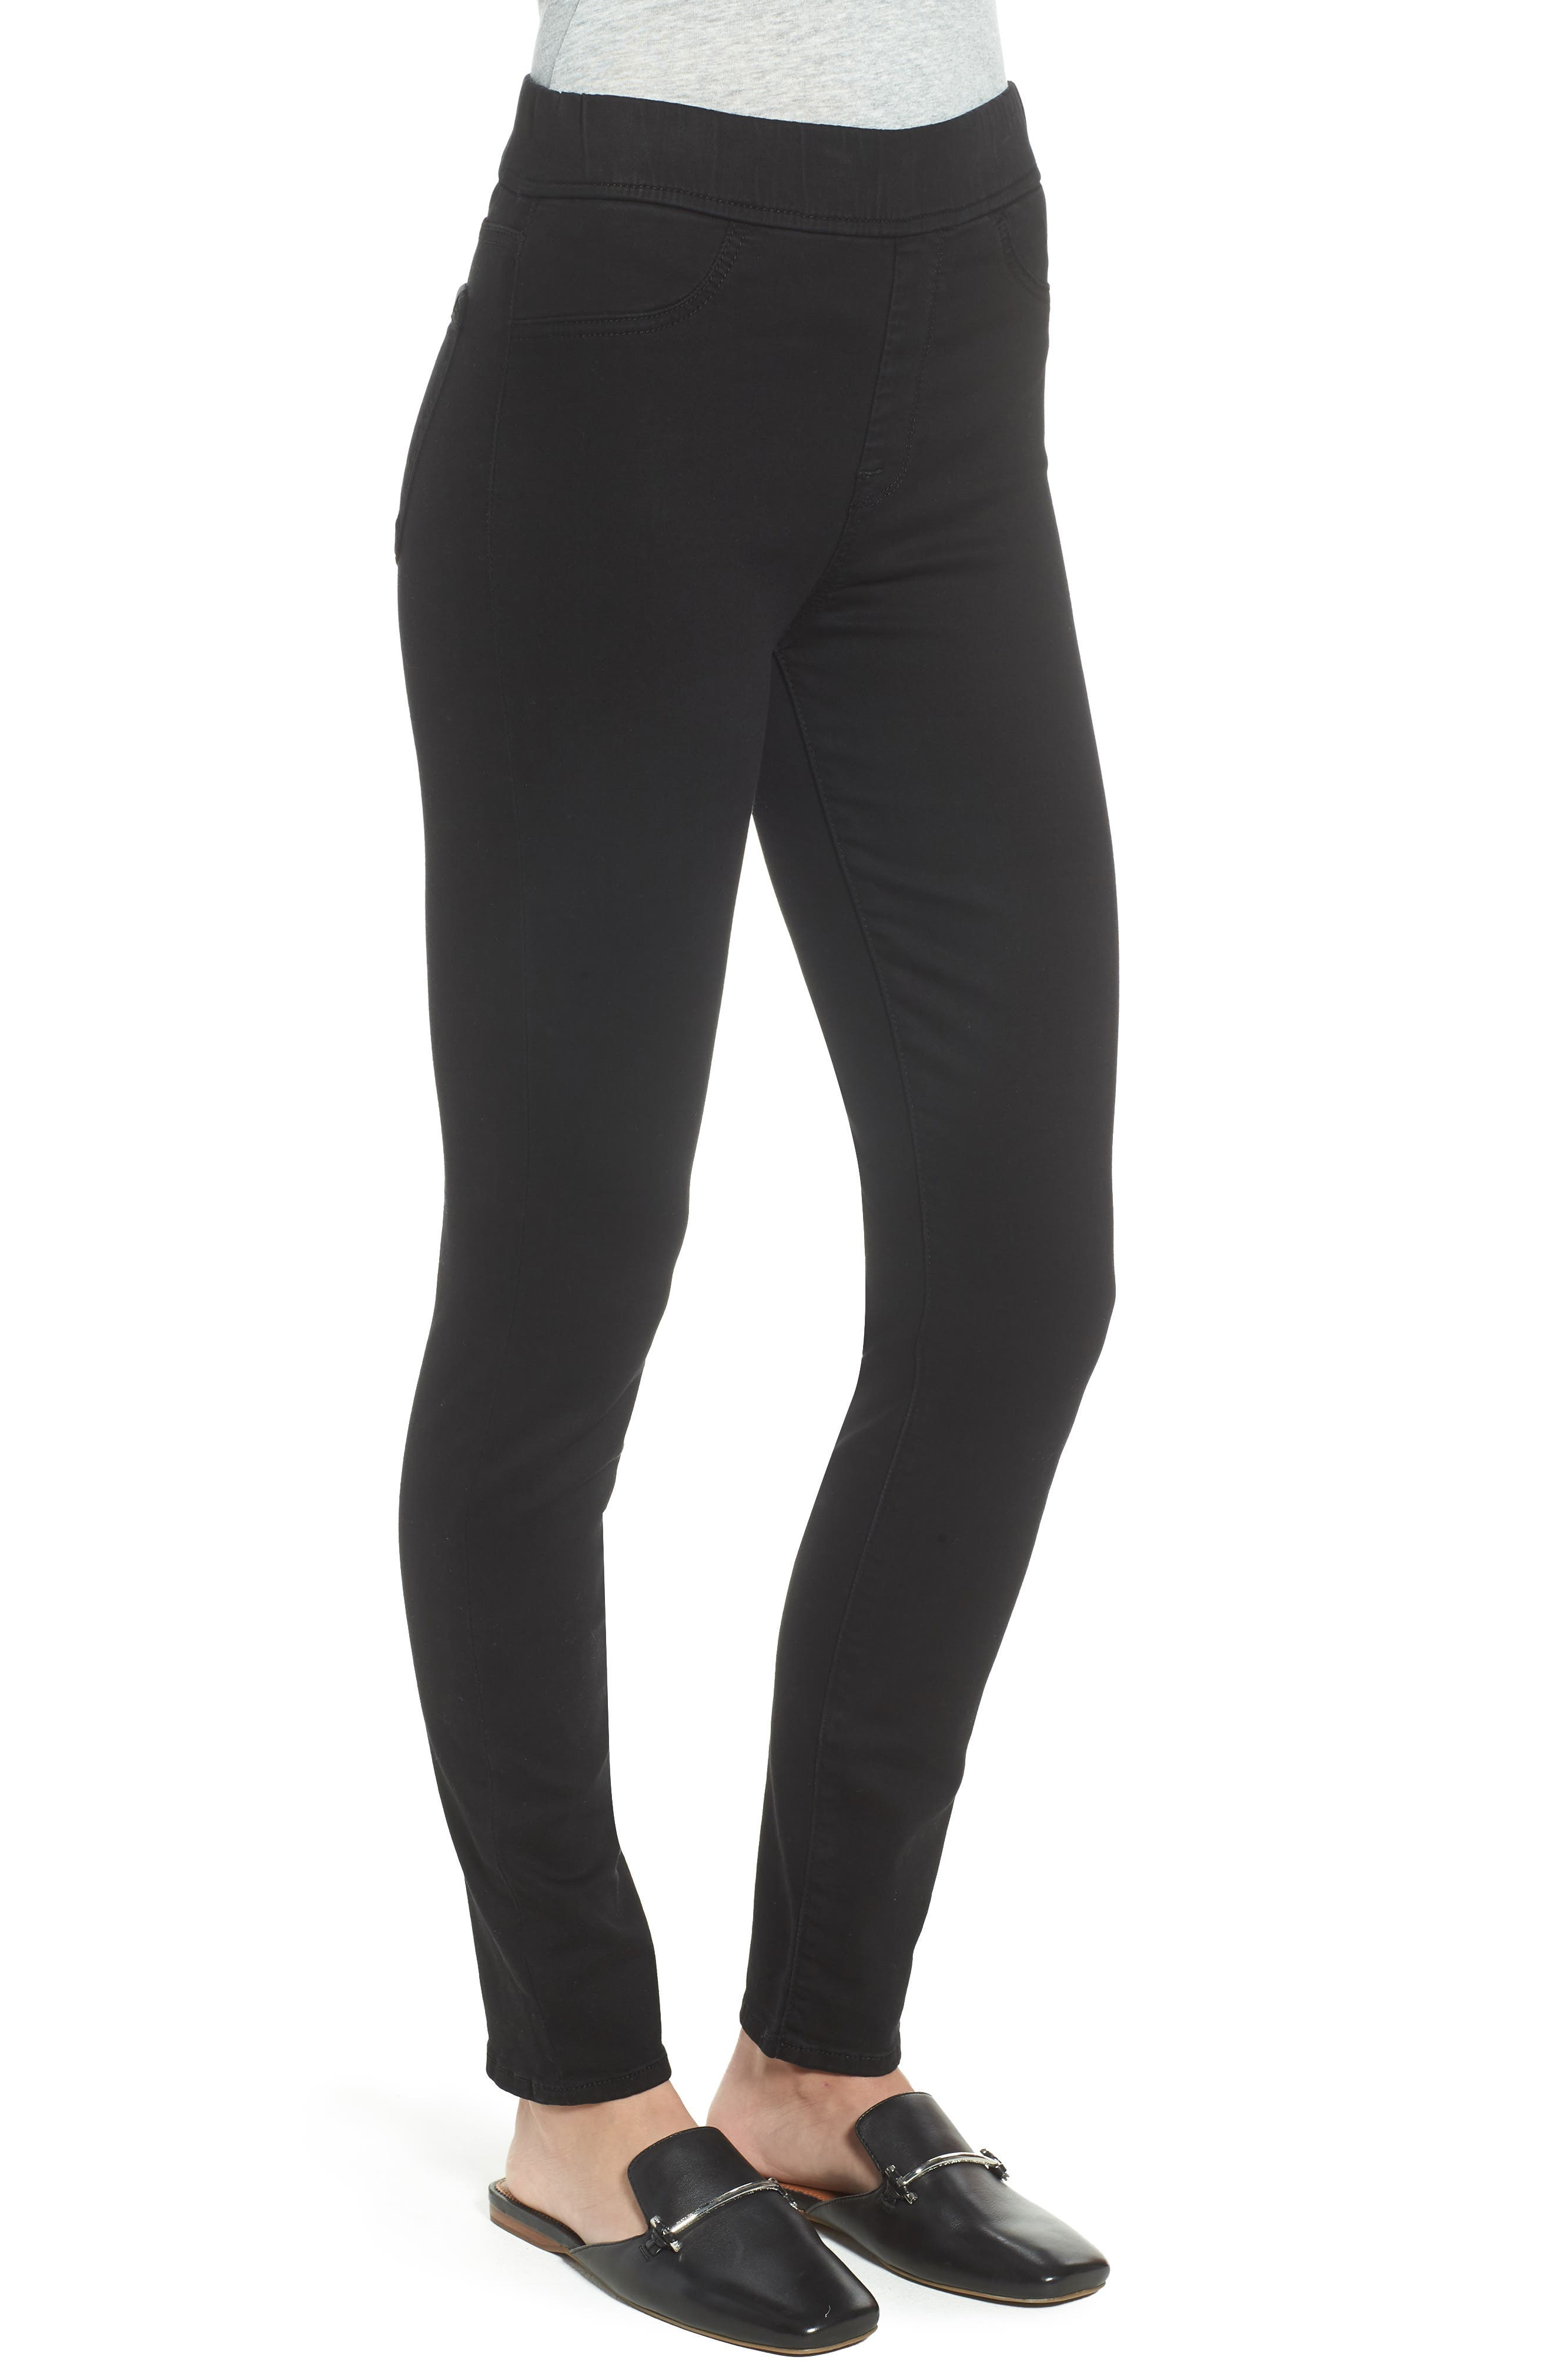 Comfort Skinny Denim Leggings,                             Alternate thumbnail 3, color,                             RICHE TOUCH BLACK NOIR